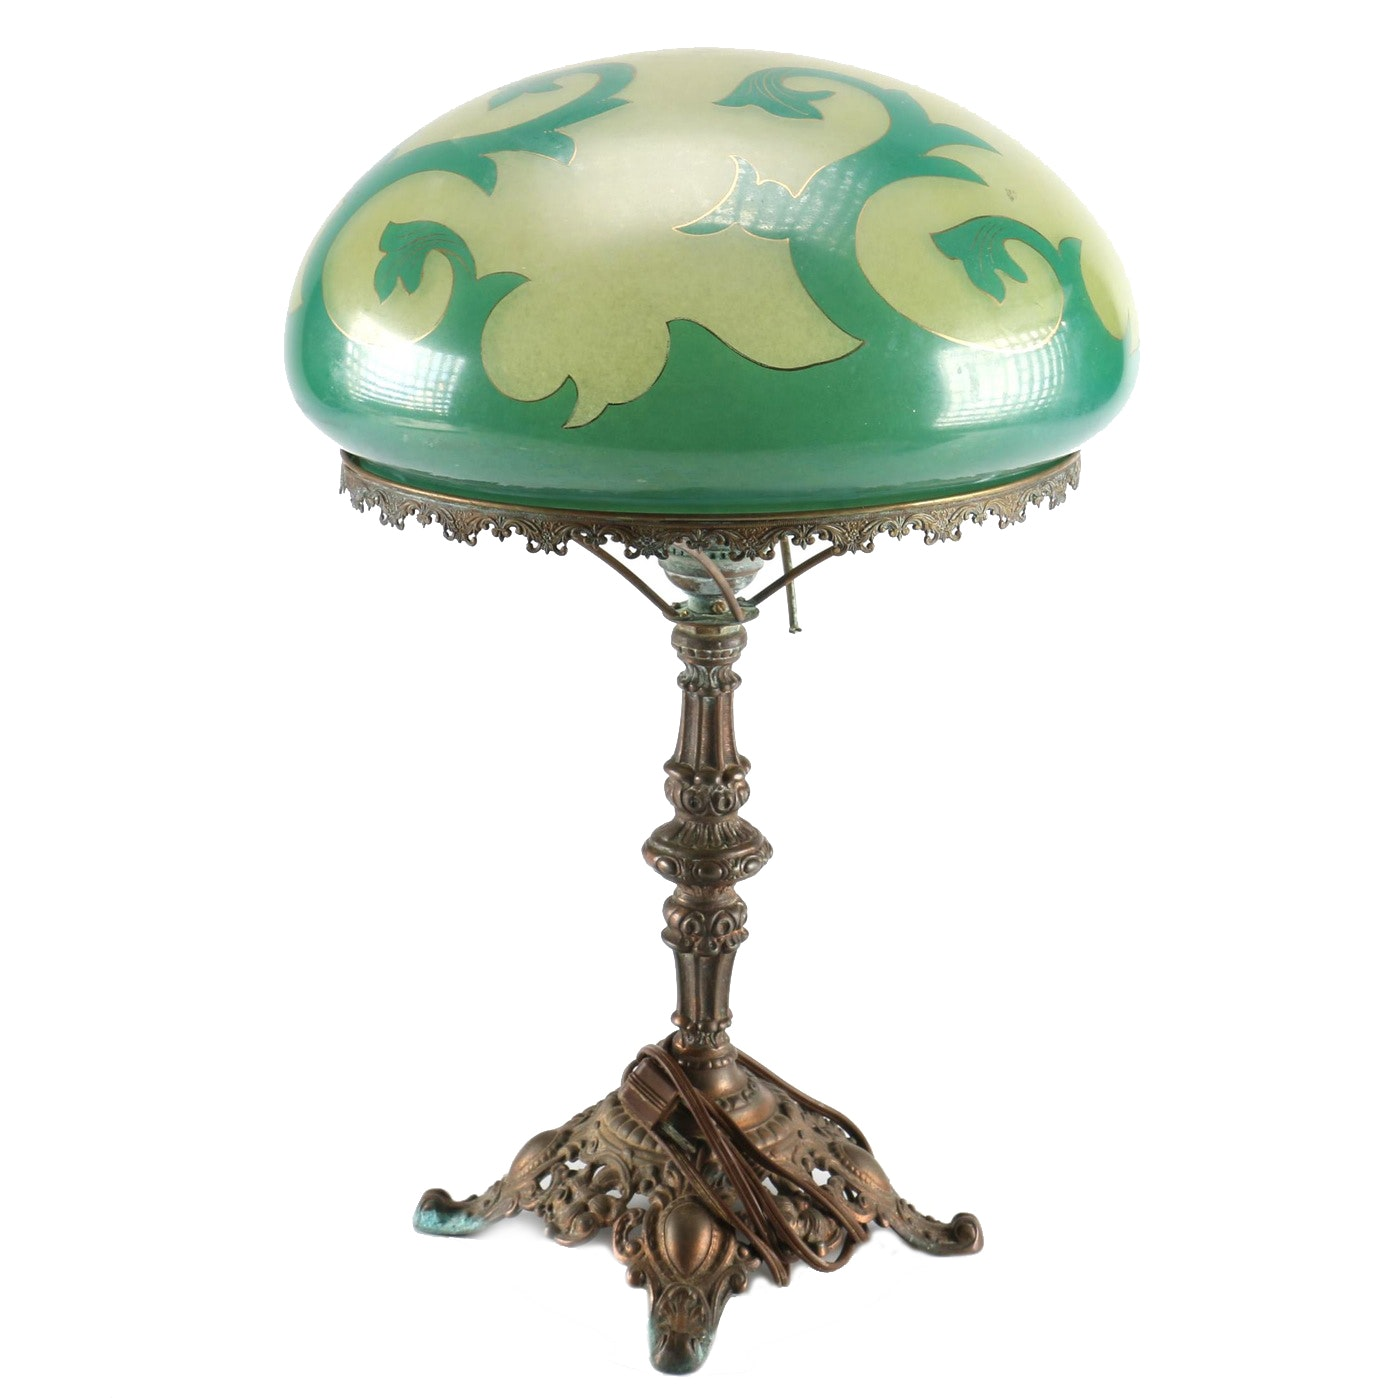 Art Nouveau Style Copper Alloy Table Lamp With Green Mushroom Glass Shade